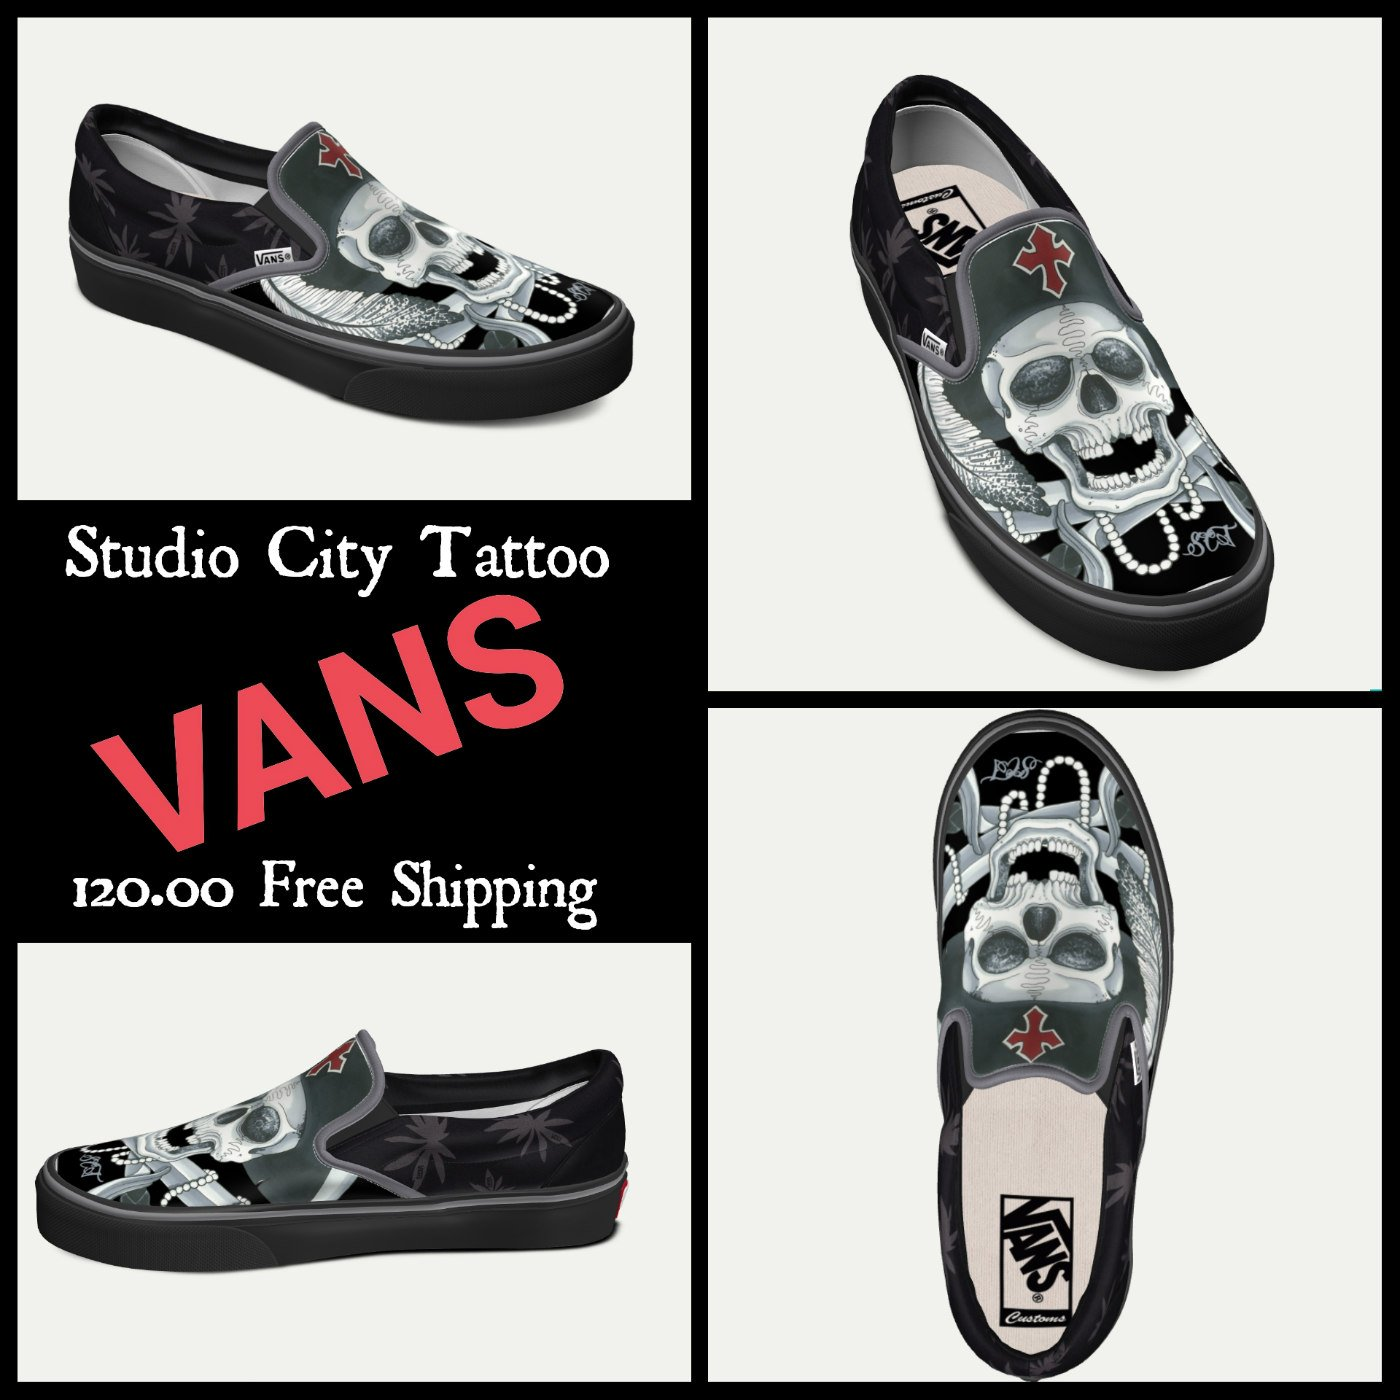 vans skate show studio city tattoo web